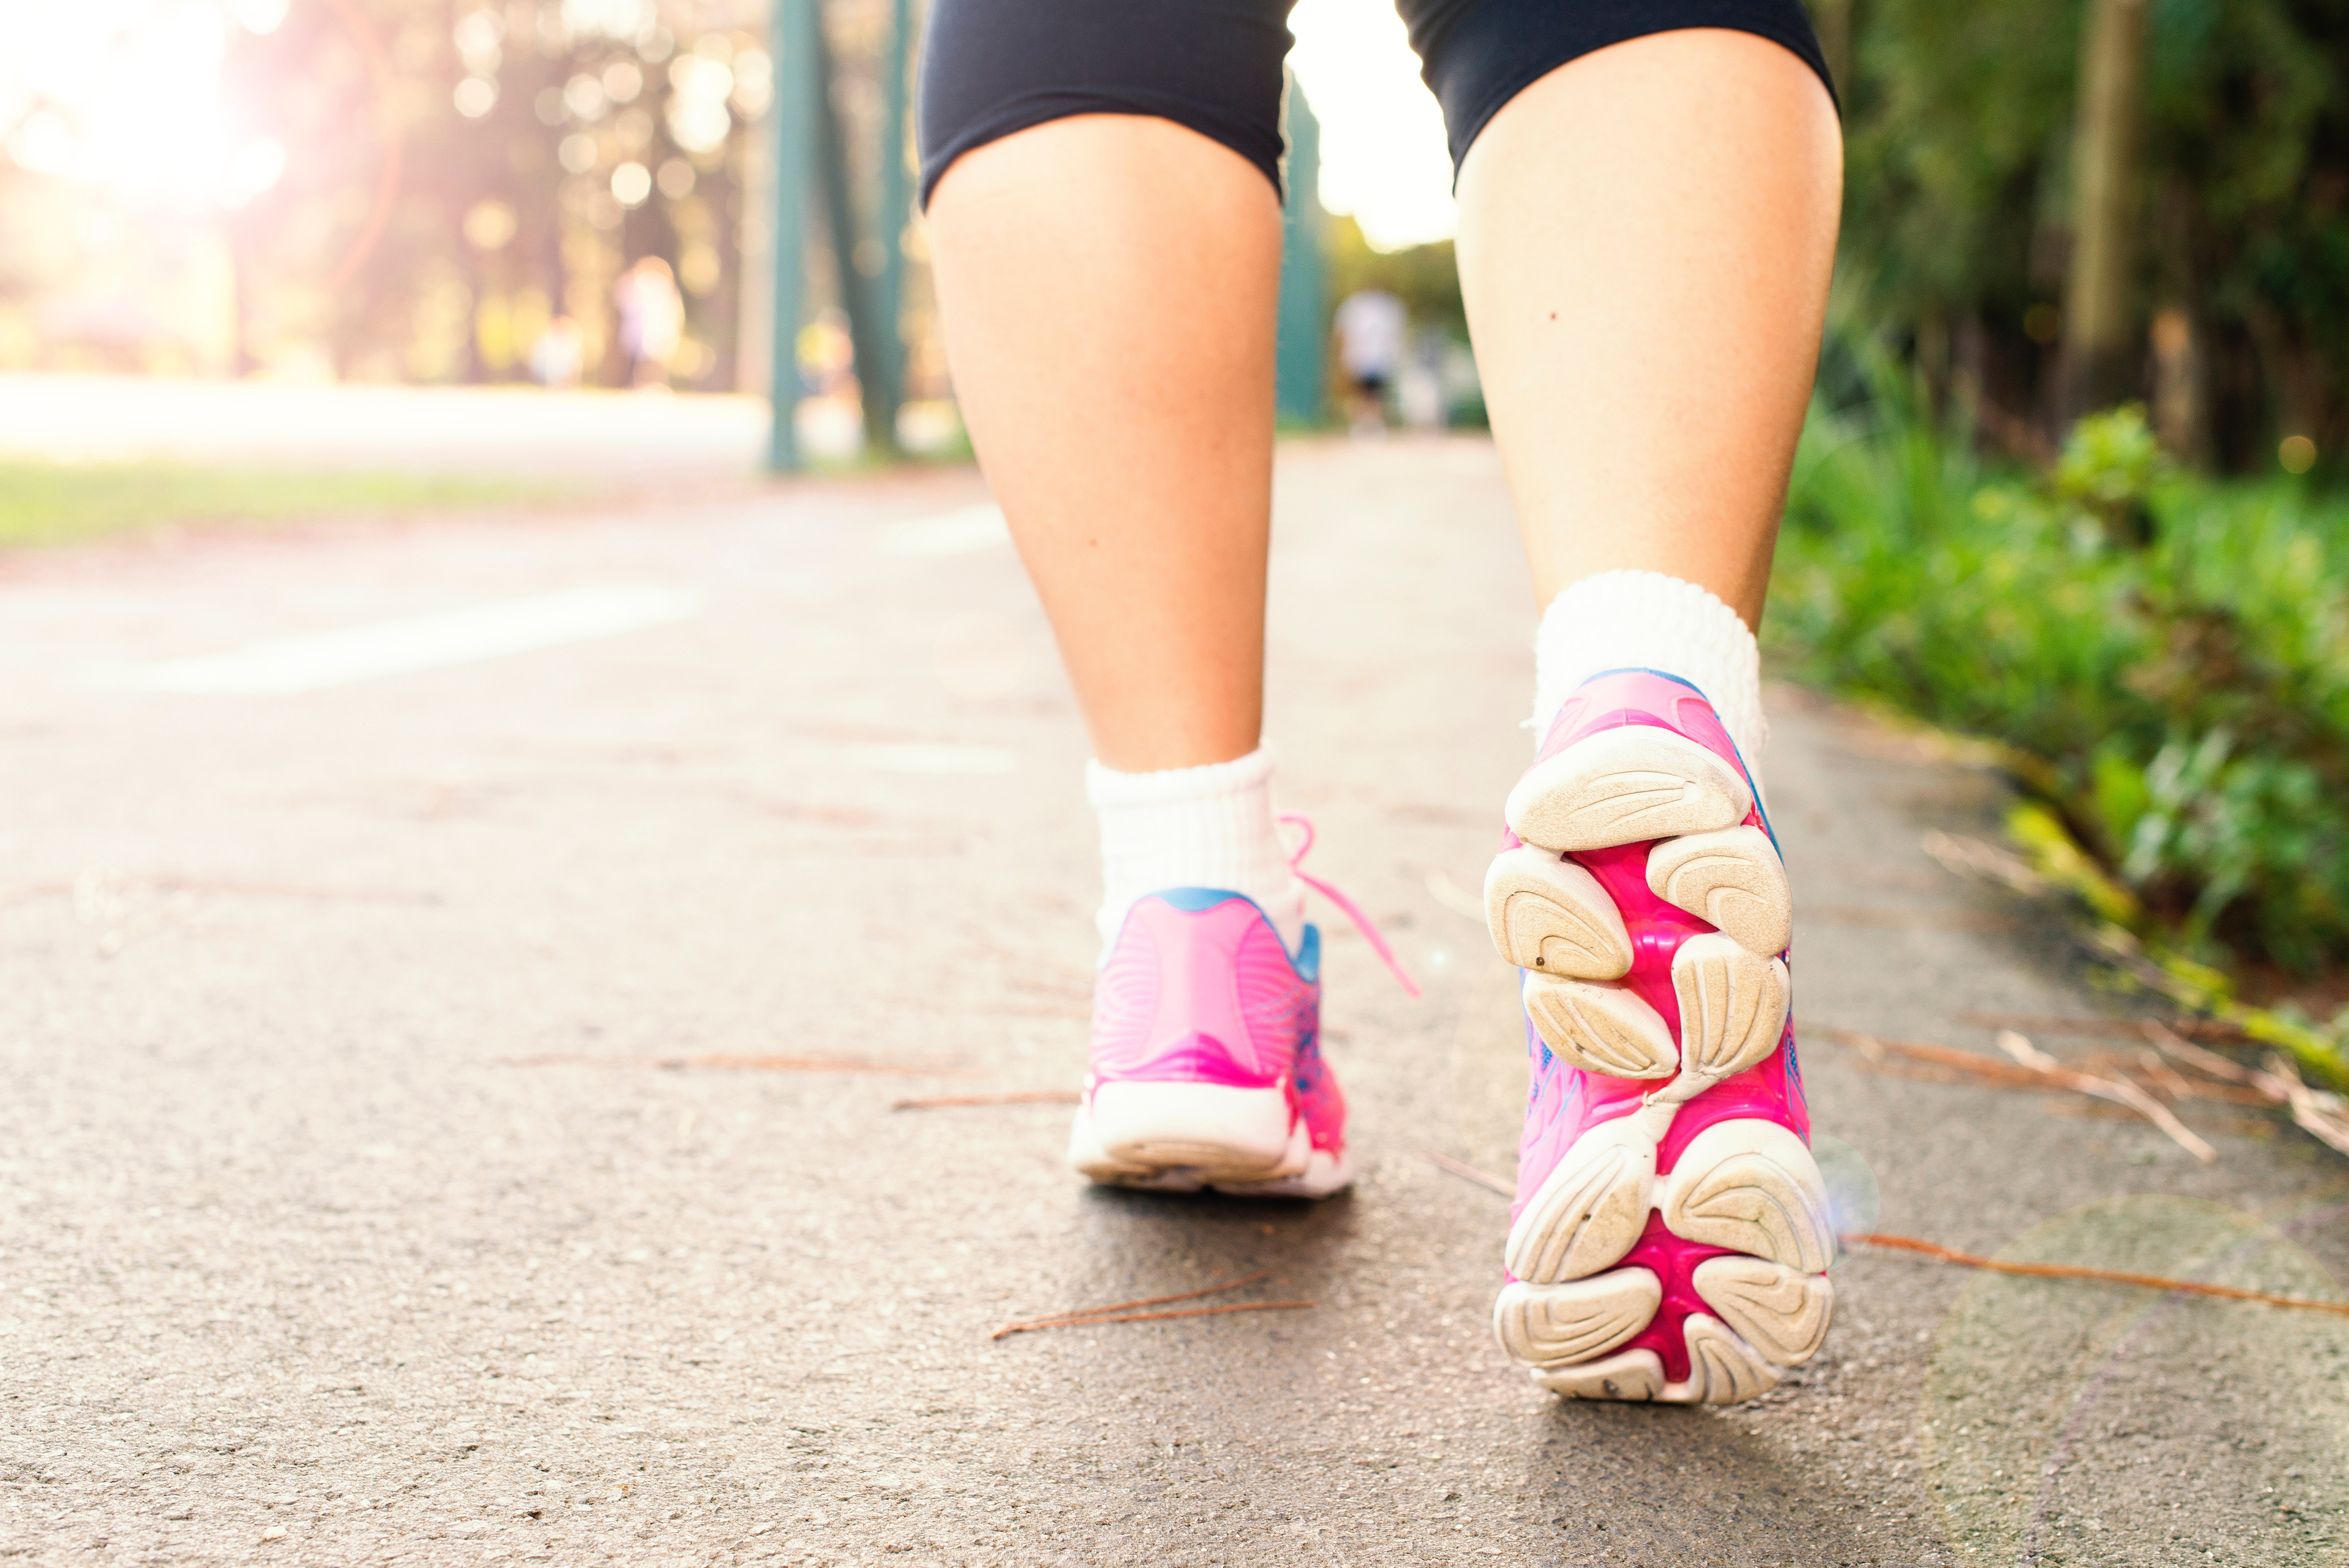 3 Amazing Yet Simple Secrets Of Walking To Lose Weight